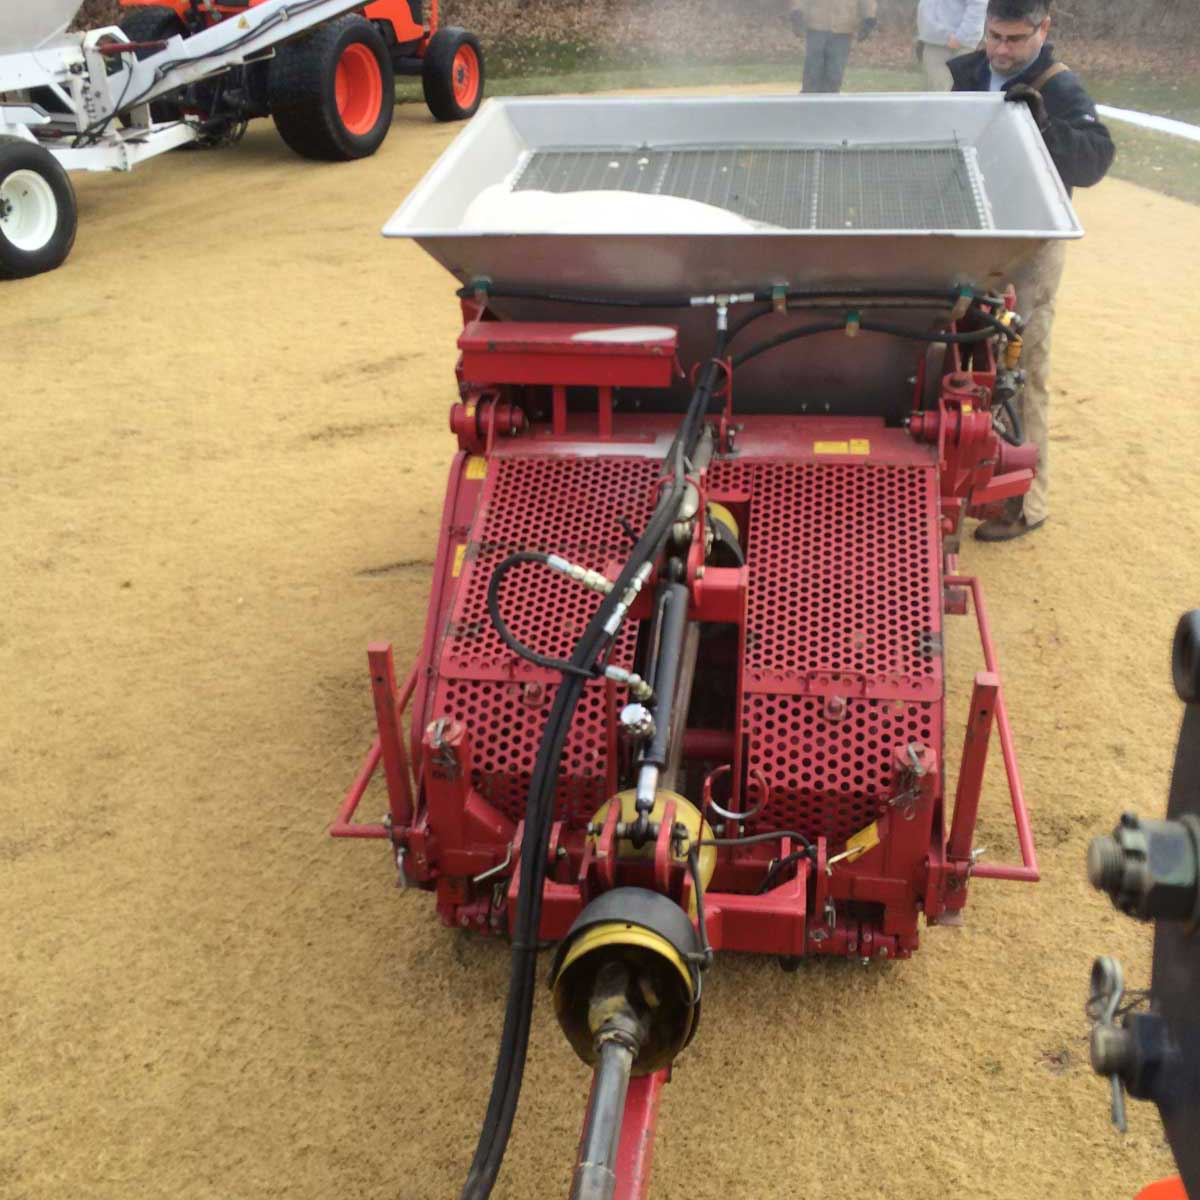 aerification services company that uses sand master equipment